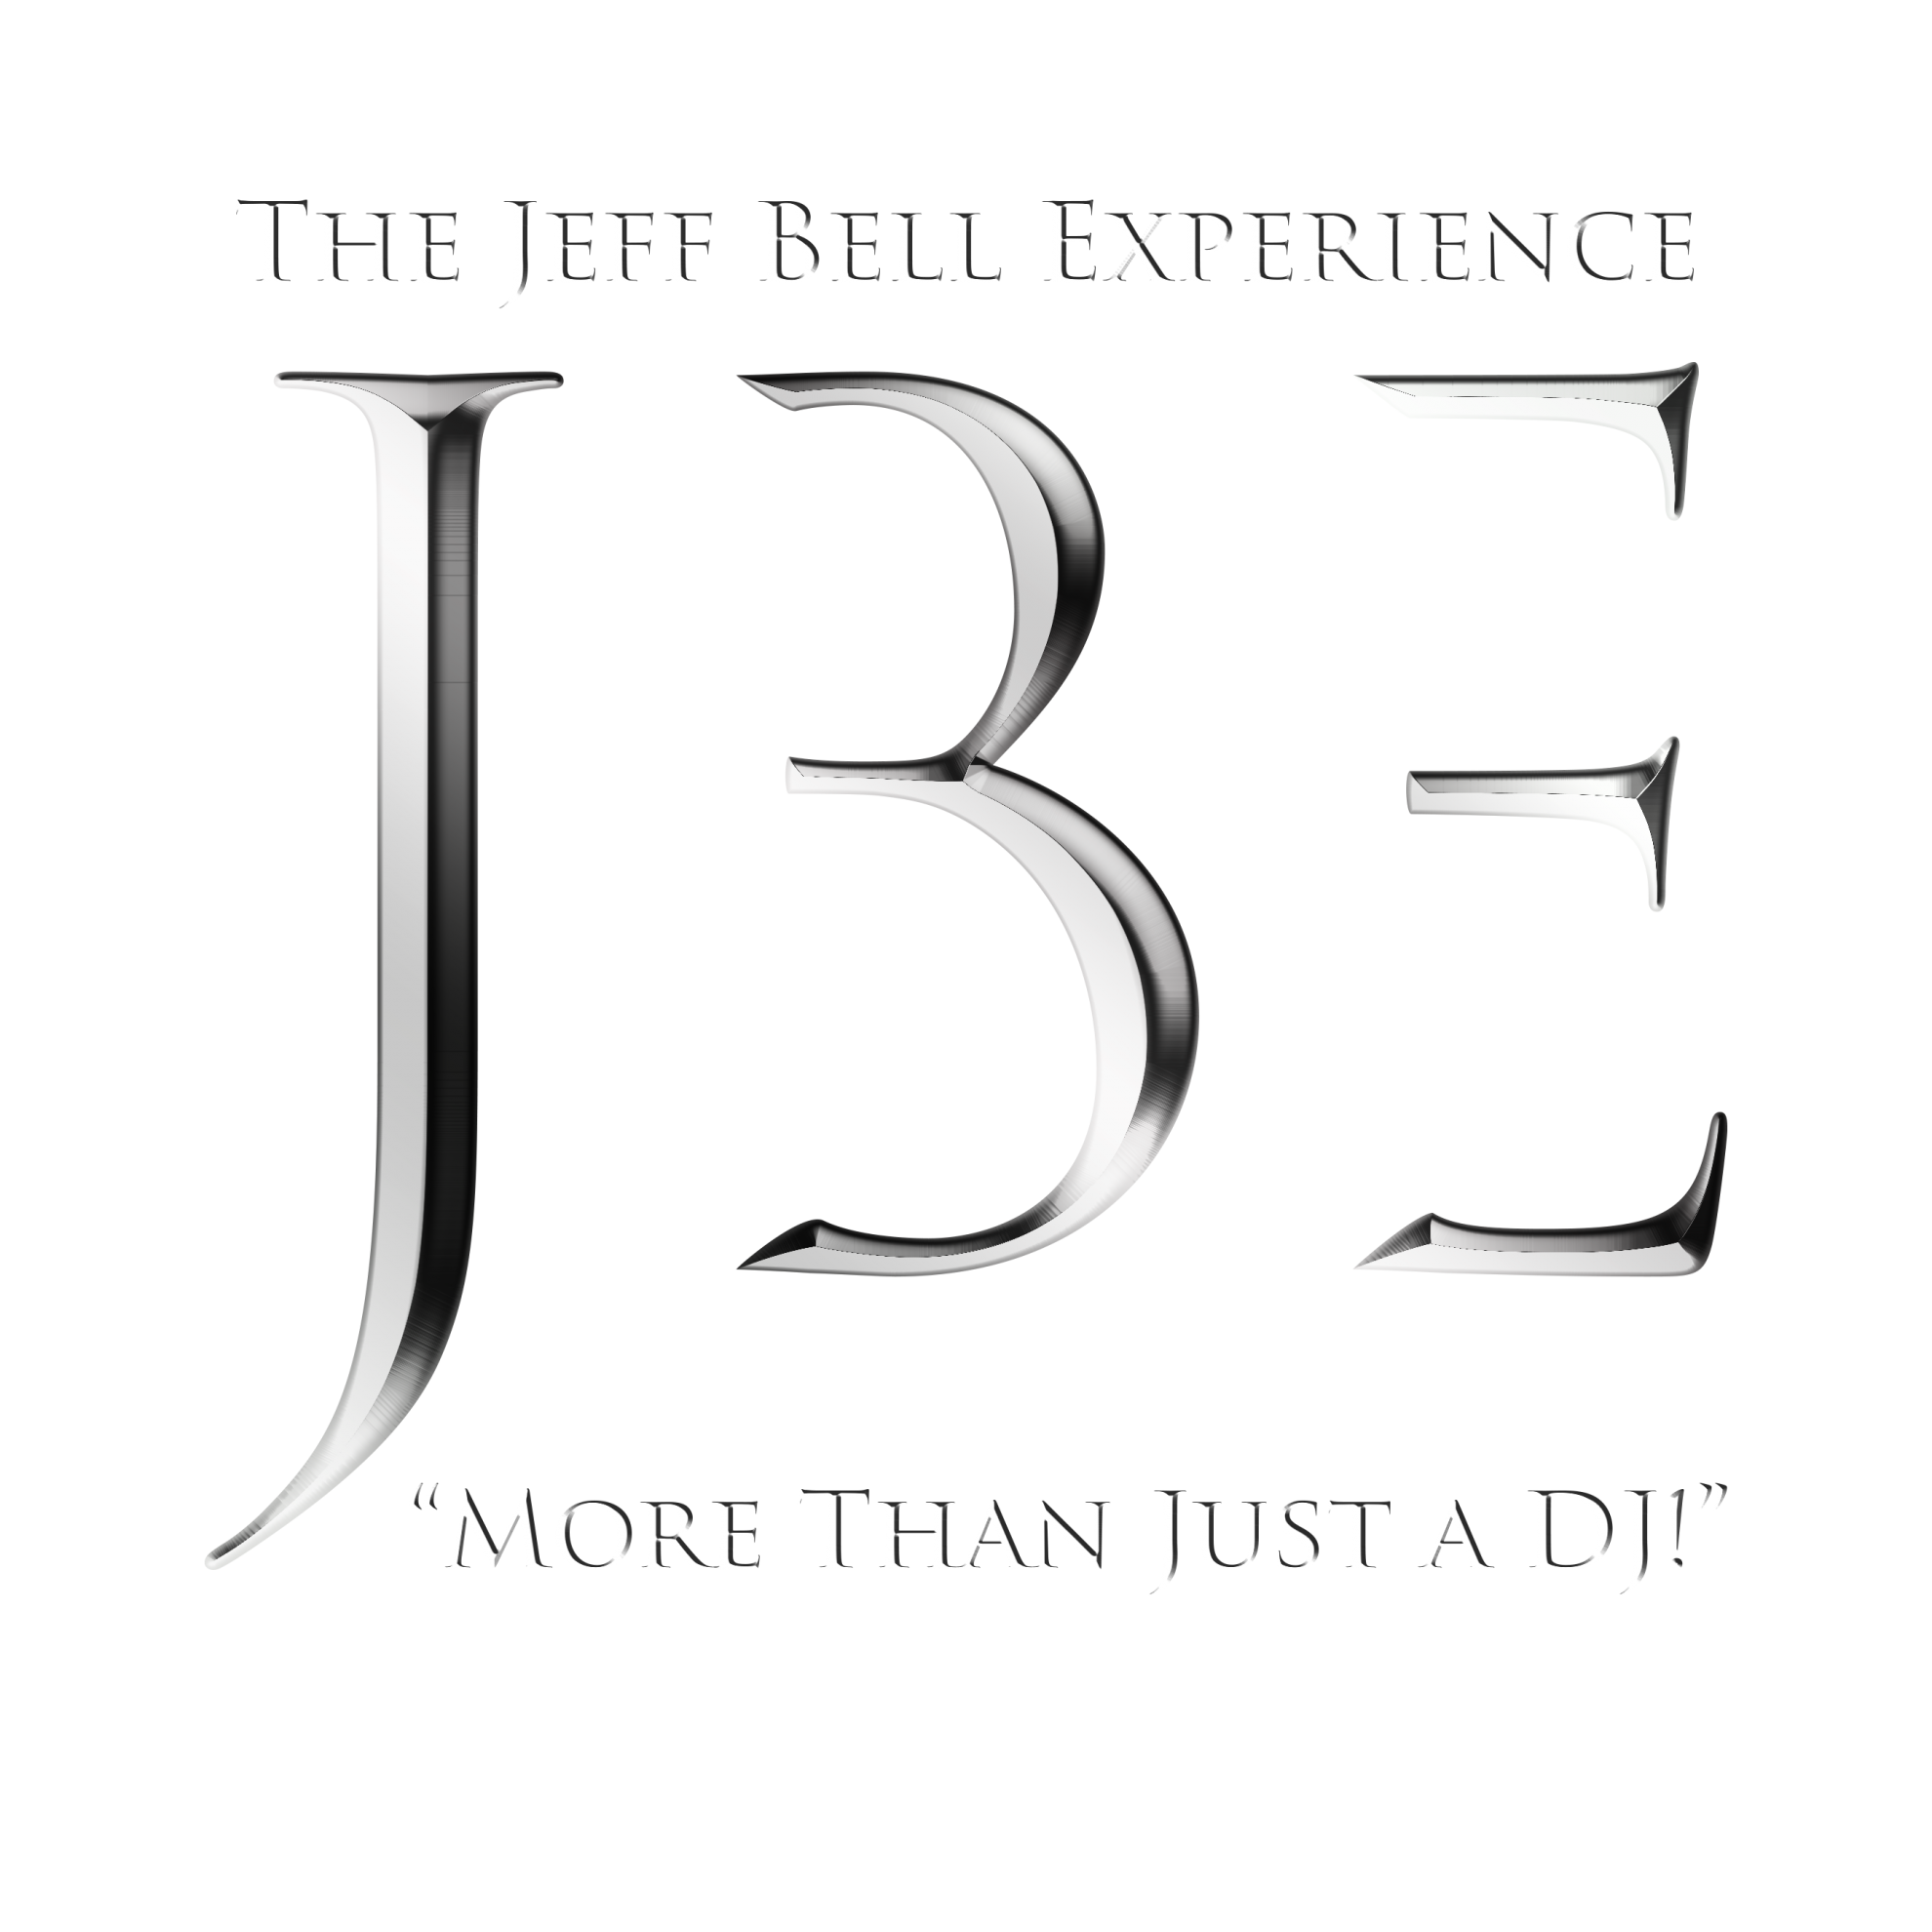 10 Questions with Jeff Bell